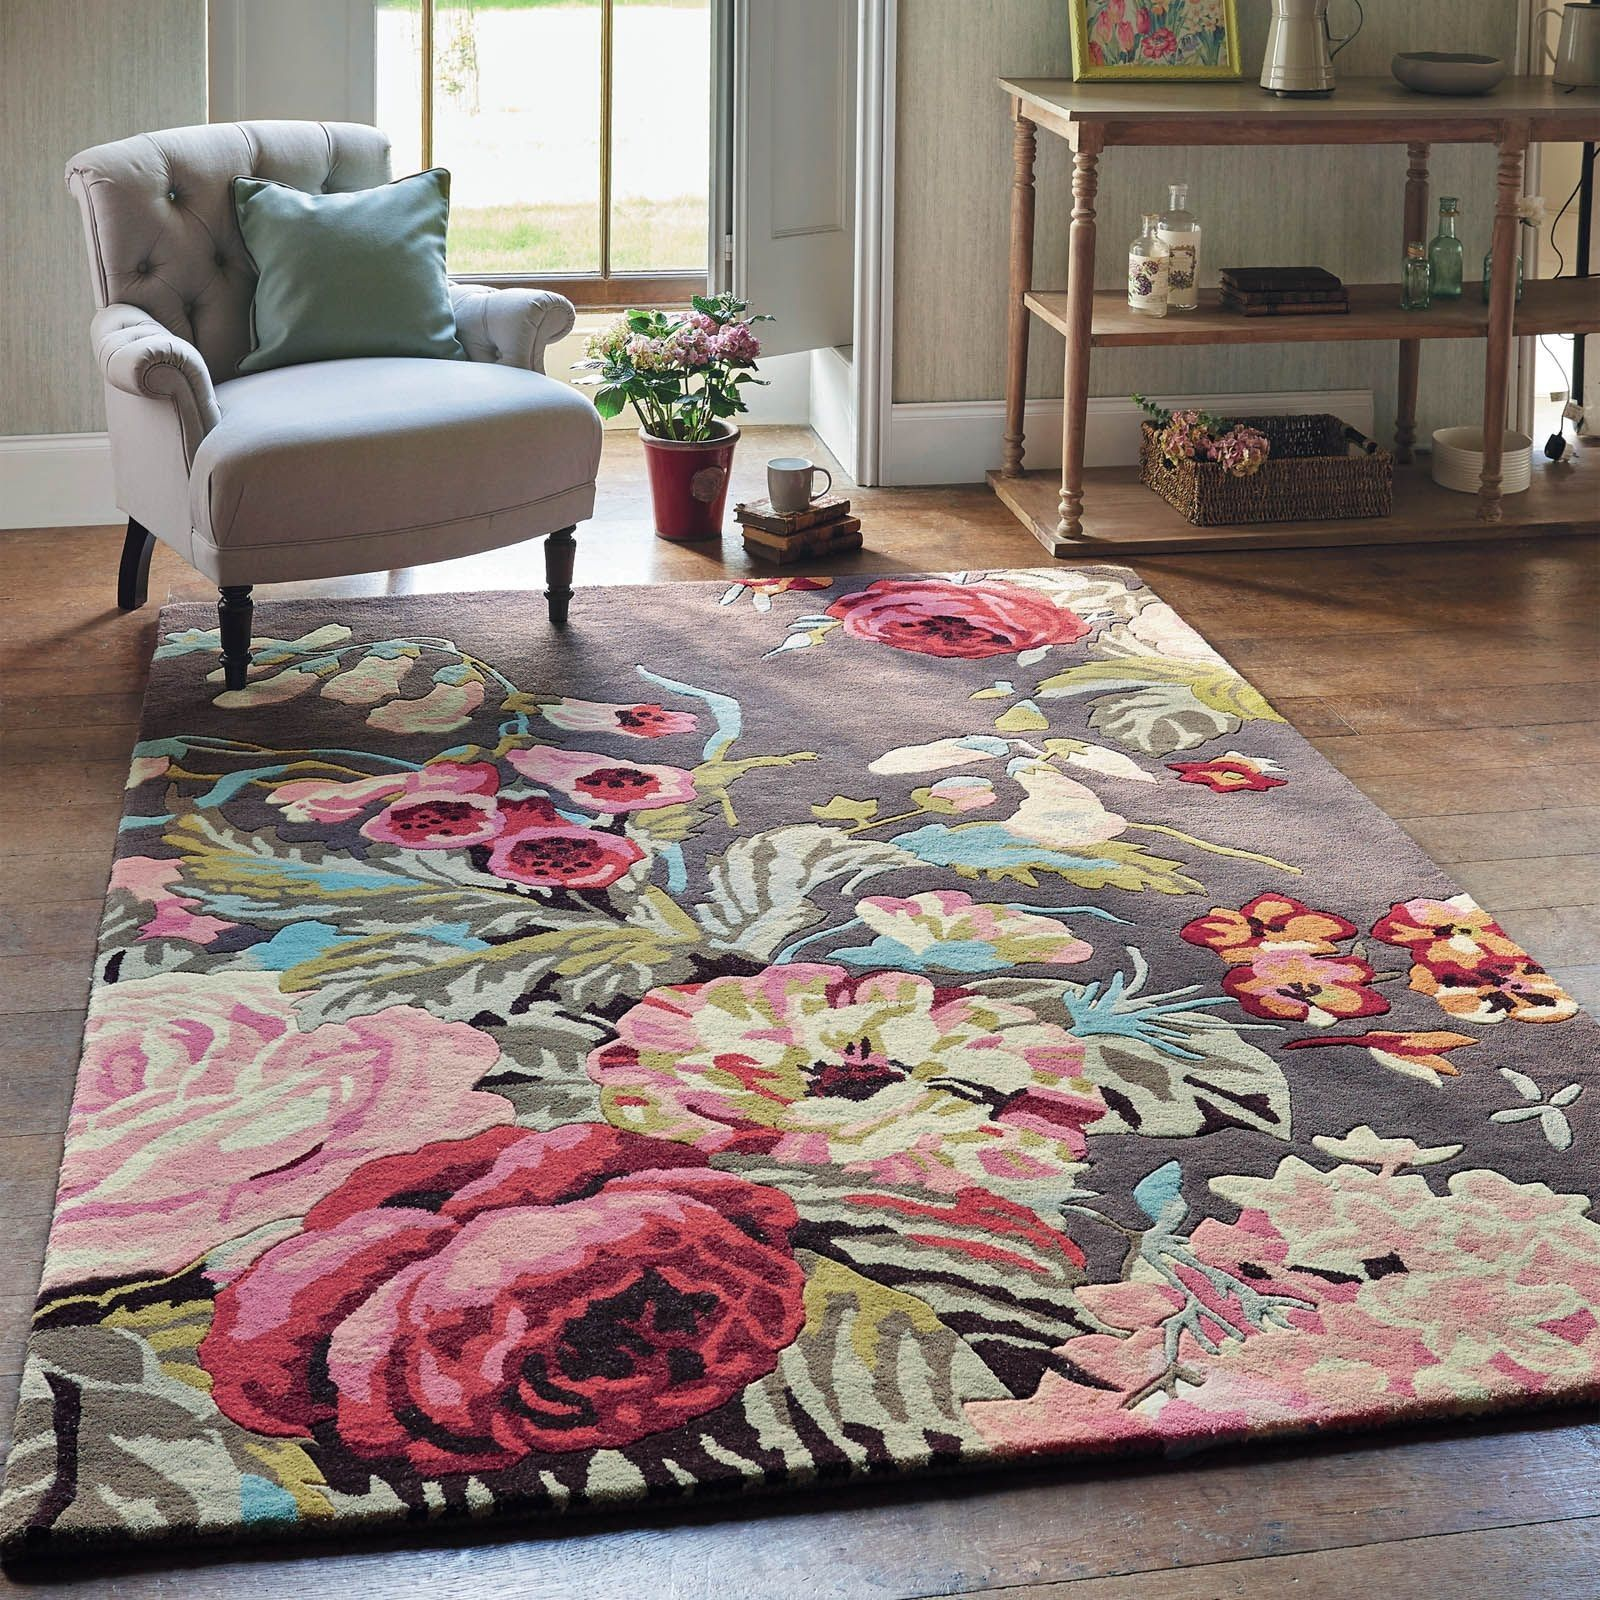 Illusion Rosella Rugs In Pink And Blue Free Uk Delivery The Beautiful Stylish Rugs Uk Home Decor Rug Design Decor